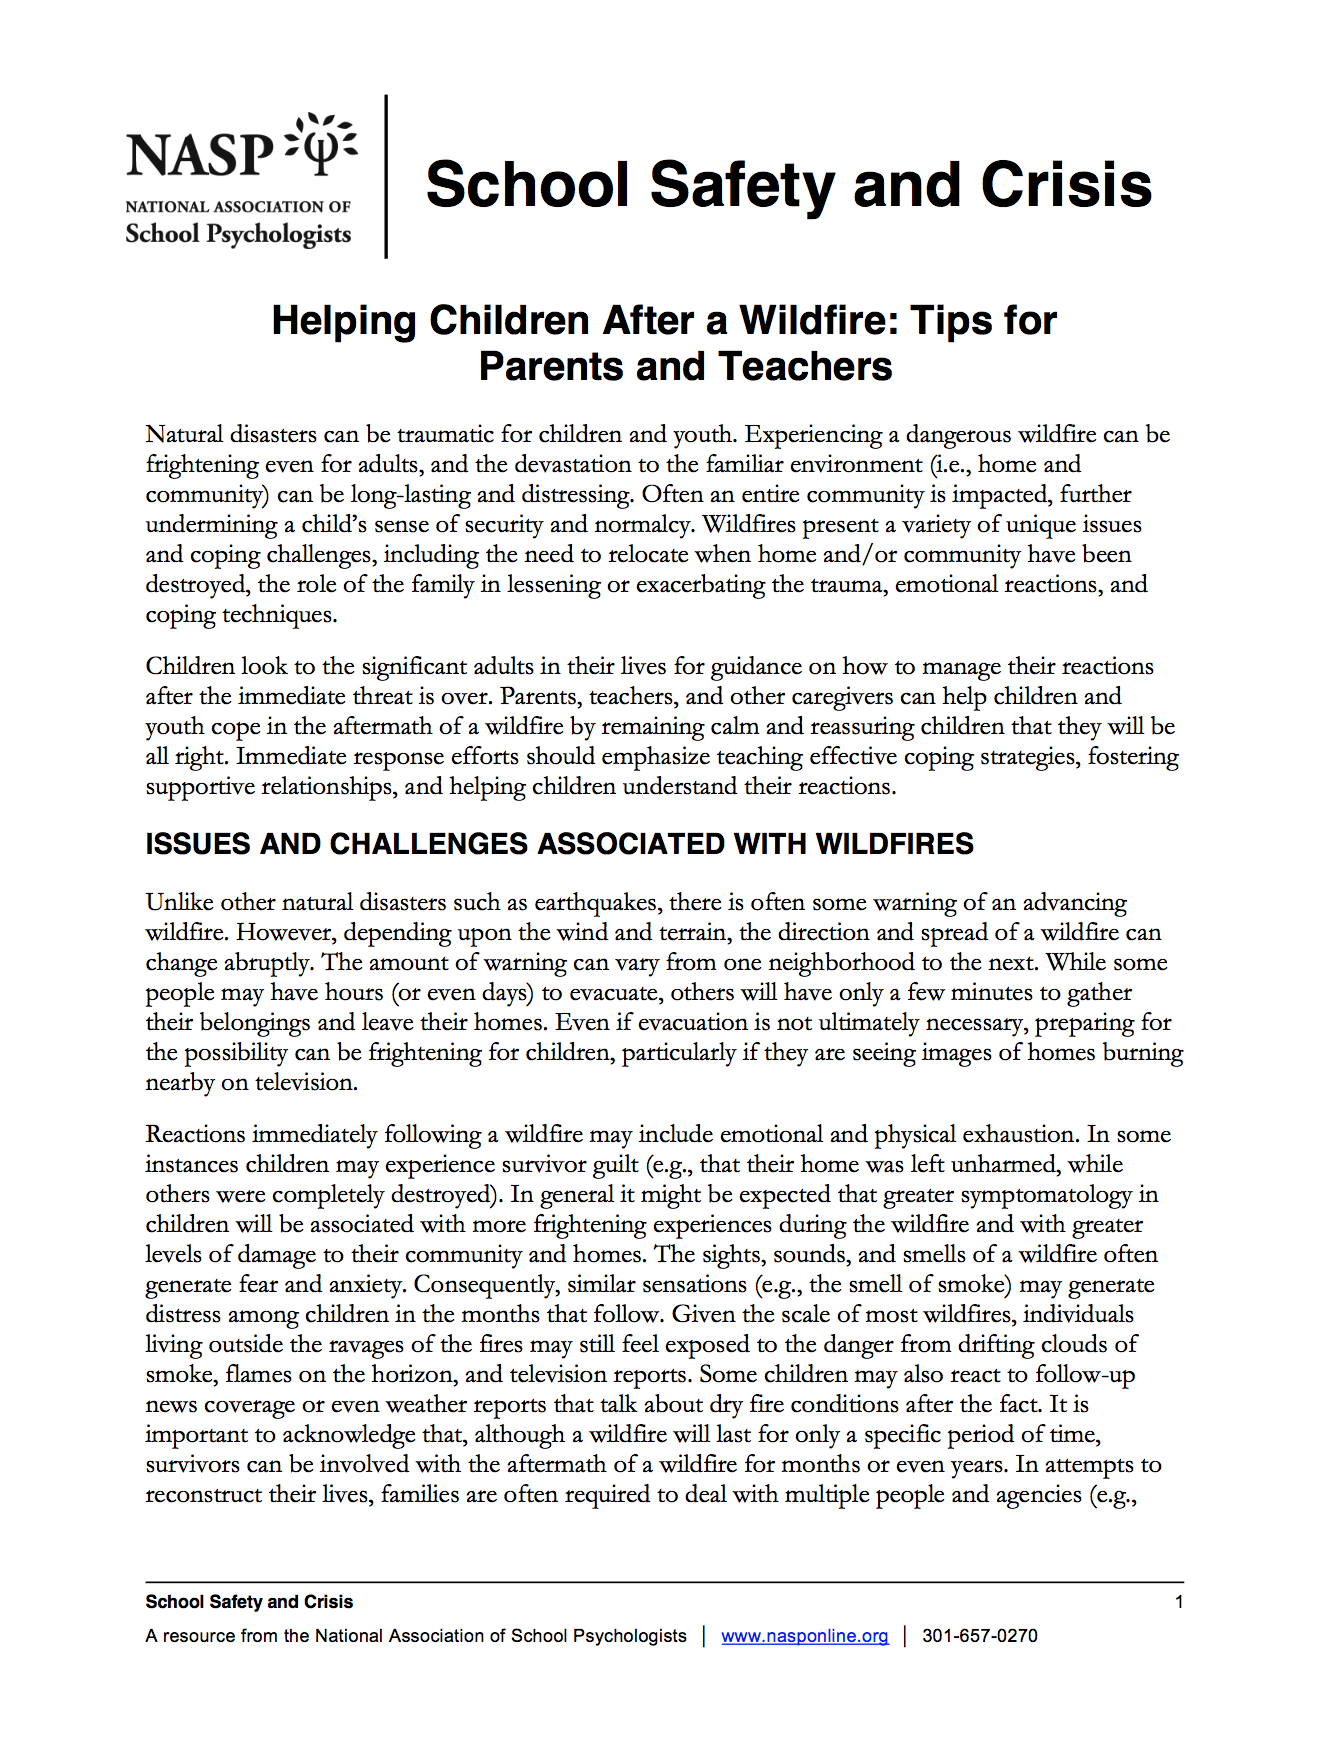 Helping Children After A Wildfire Tips For Parents And Teachers